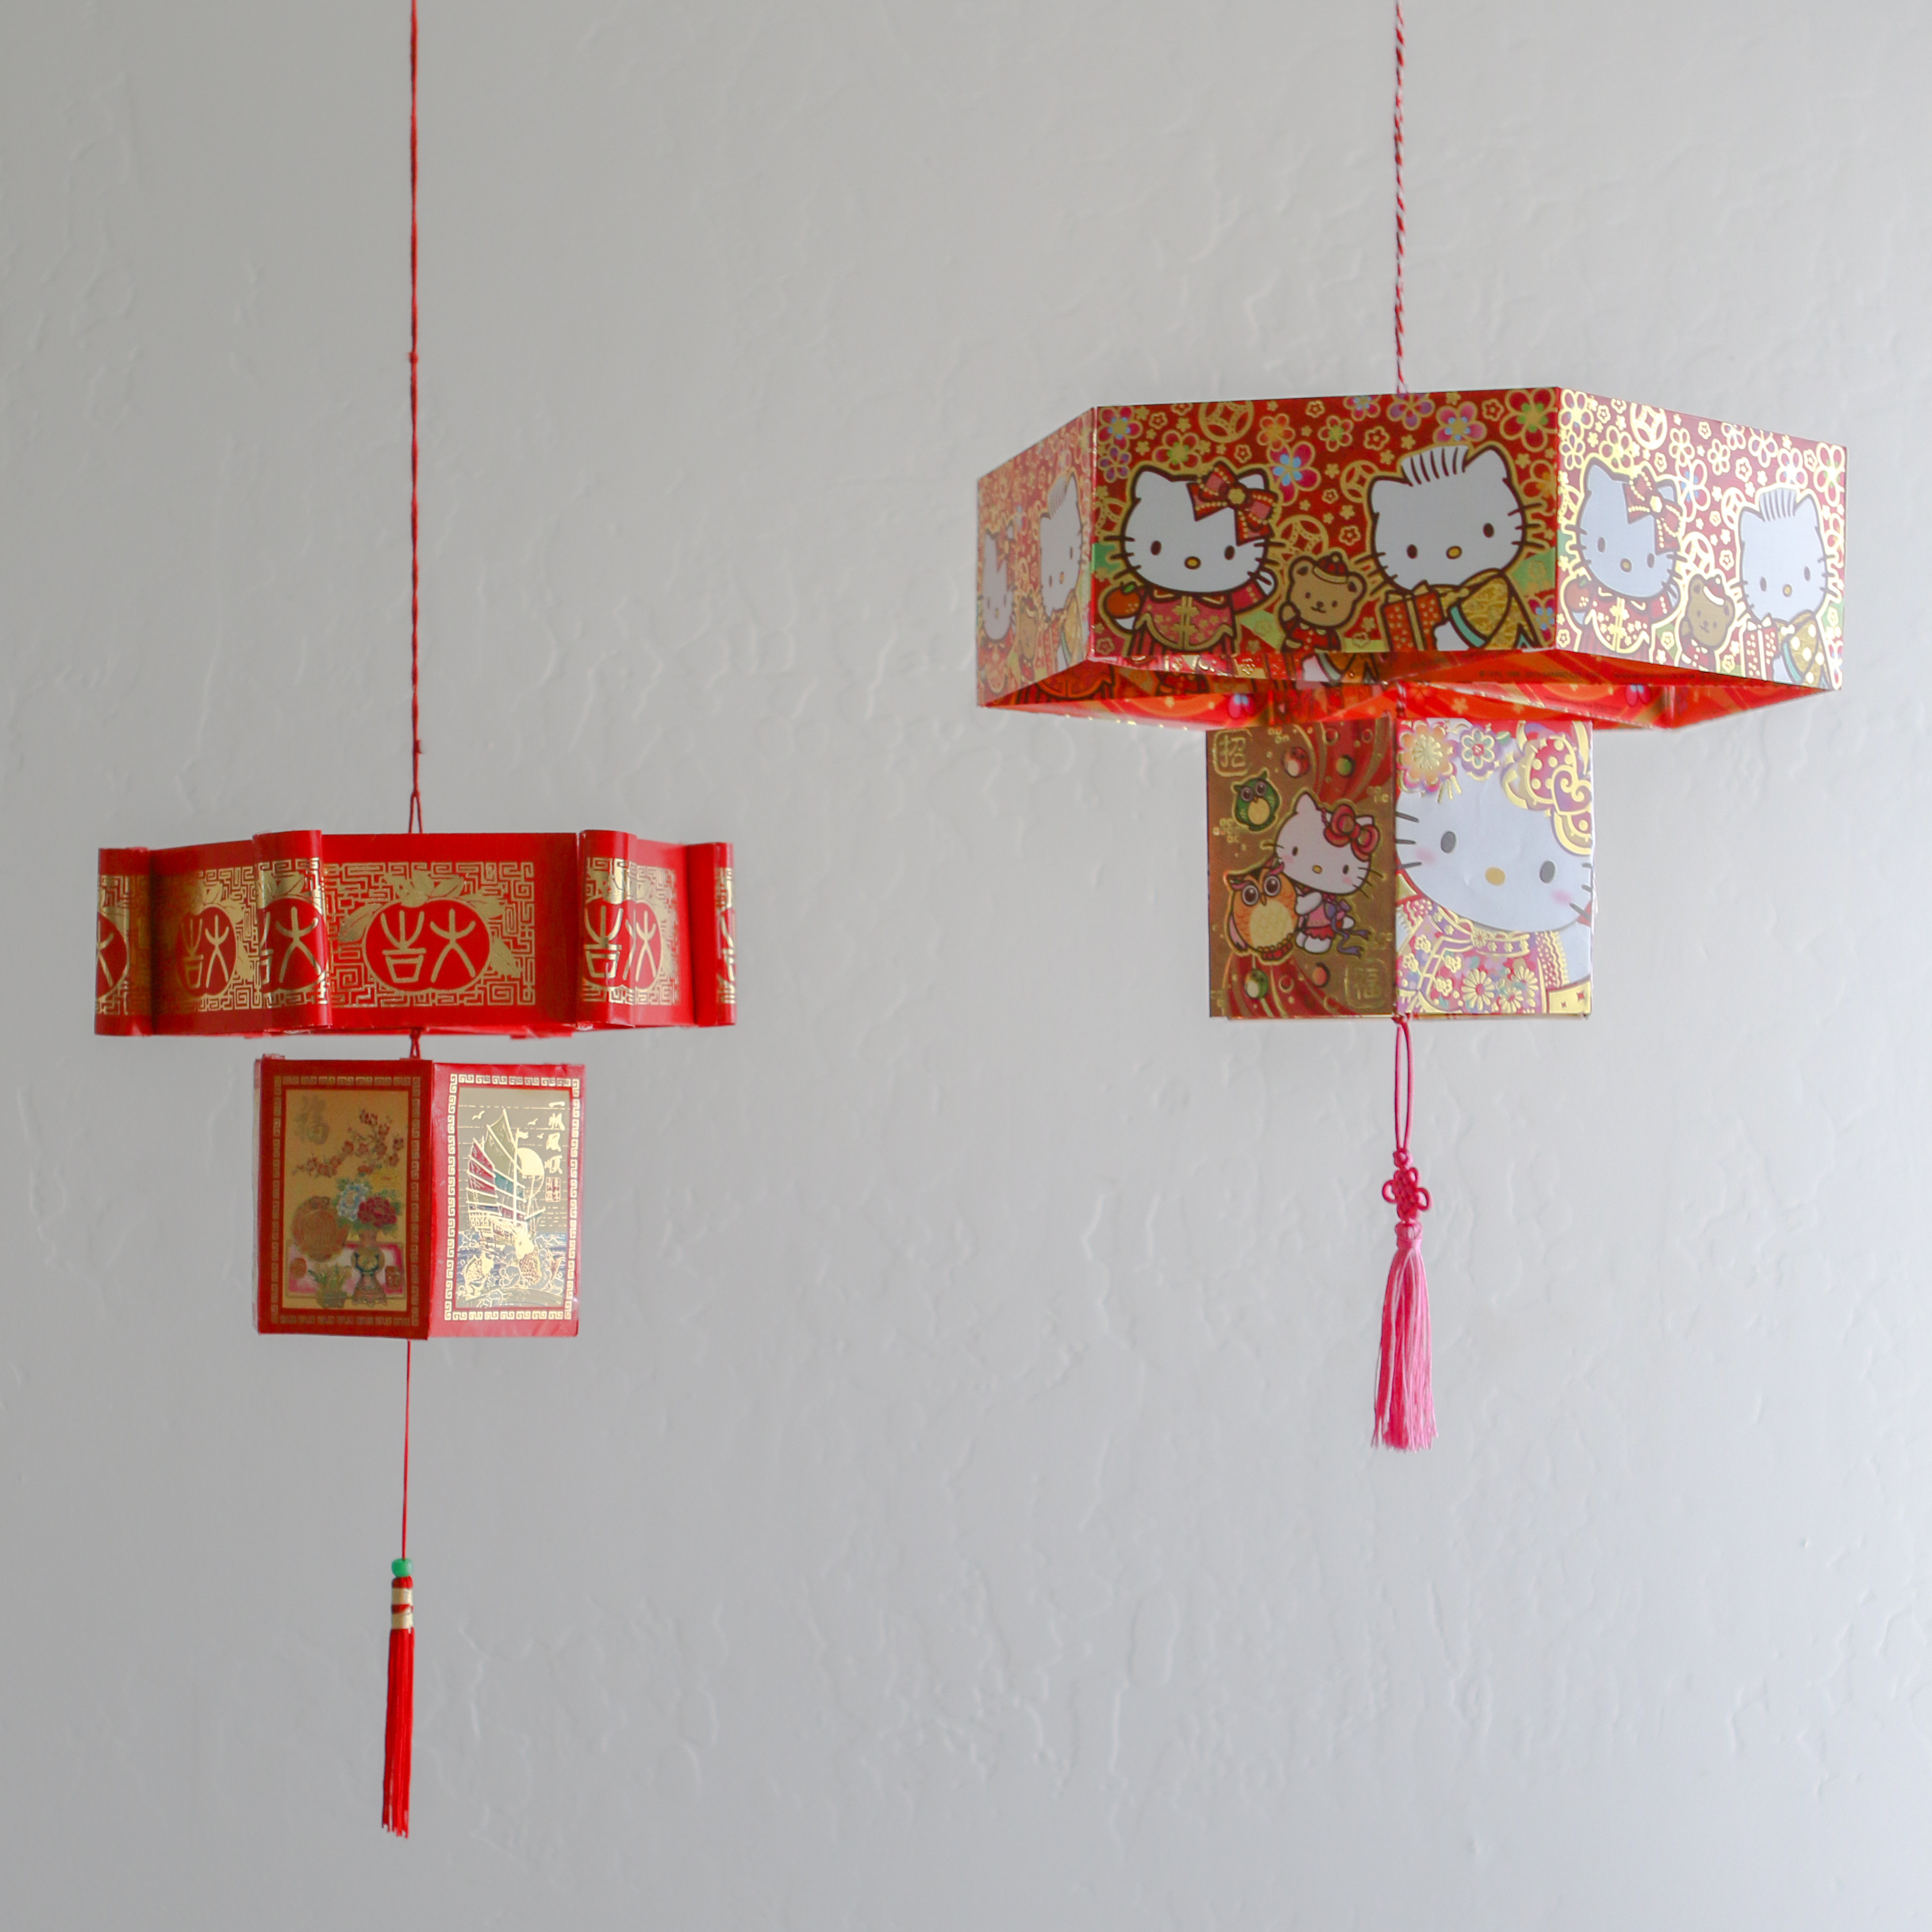 With Chinese New Year lasting for two